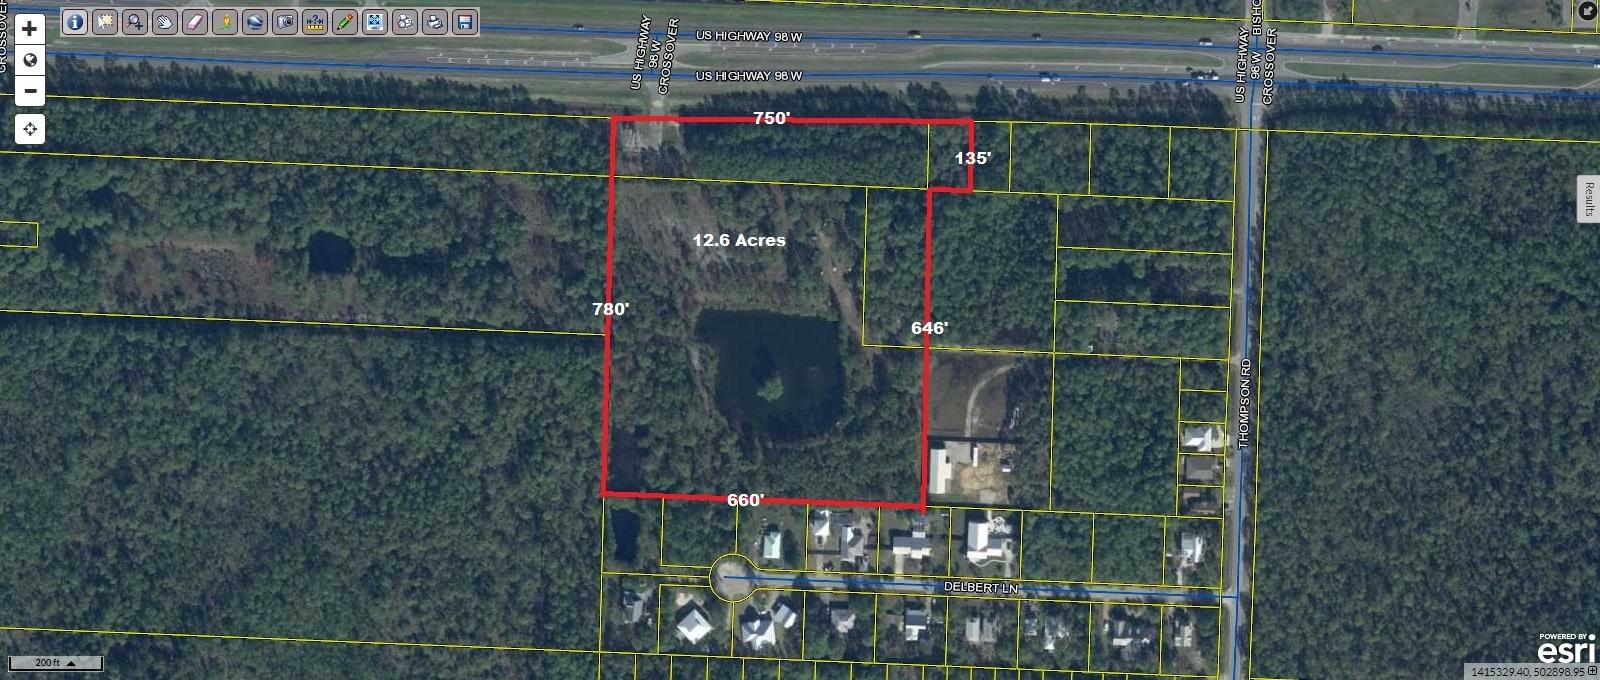 Fantastic development assemblage of four parcels in the booming Santa Rosa Beach area. Located along Hwy 98 E with 750 feet of frontage and 780 feet deep.. Just minutes from the sugar-white beaches of 30A, it is centrally located between Destin to the west and Panama City Beach to the east. with world-class shopping, fishing, recreation, dining and entertainment nearby in all directions. Zoned VMU which allows for a mixture of commercial and residential uses.